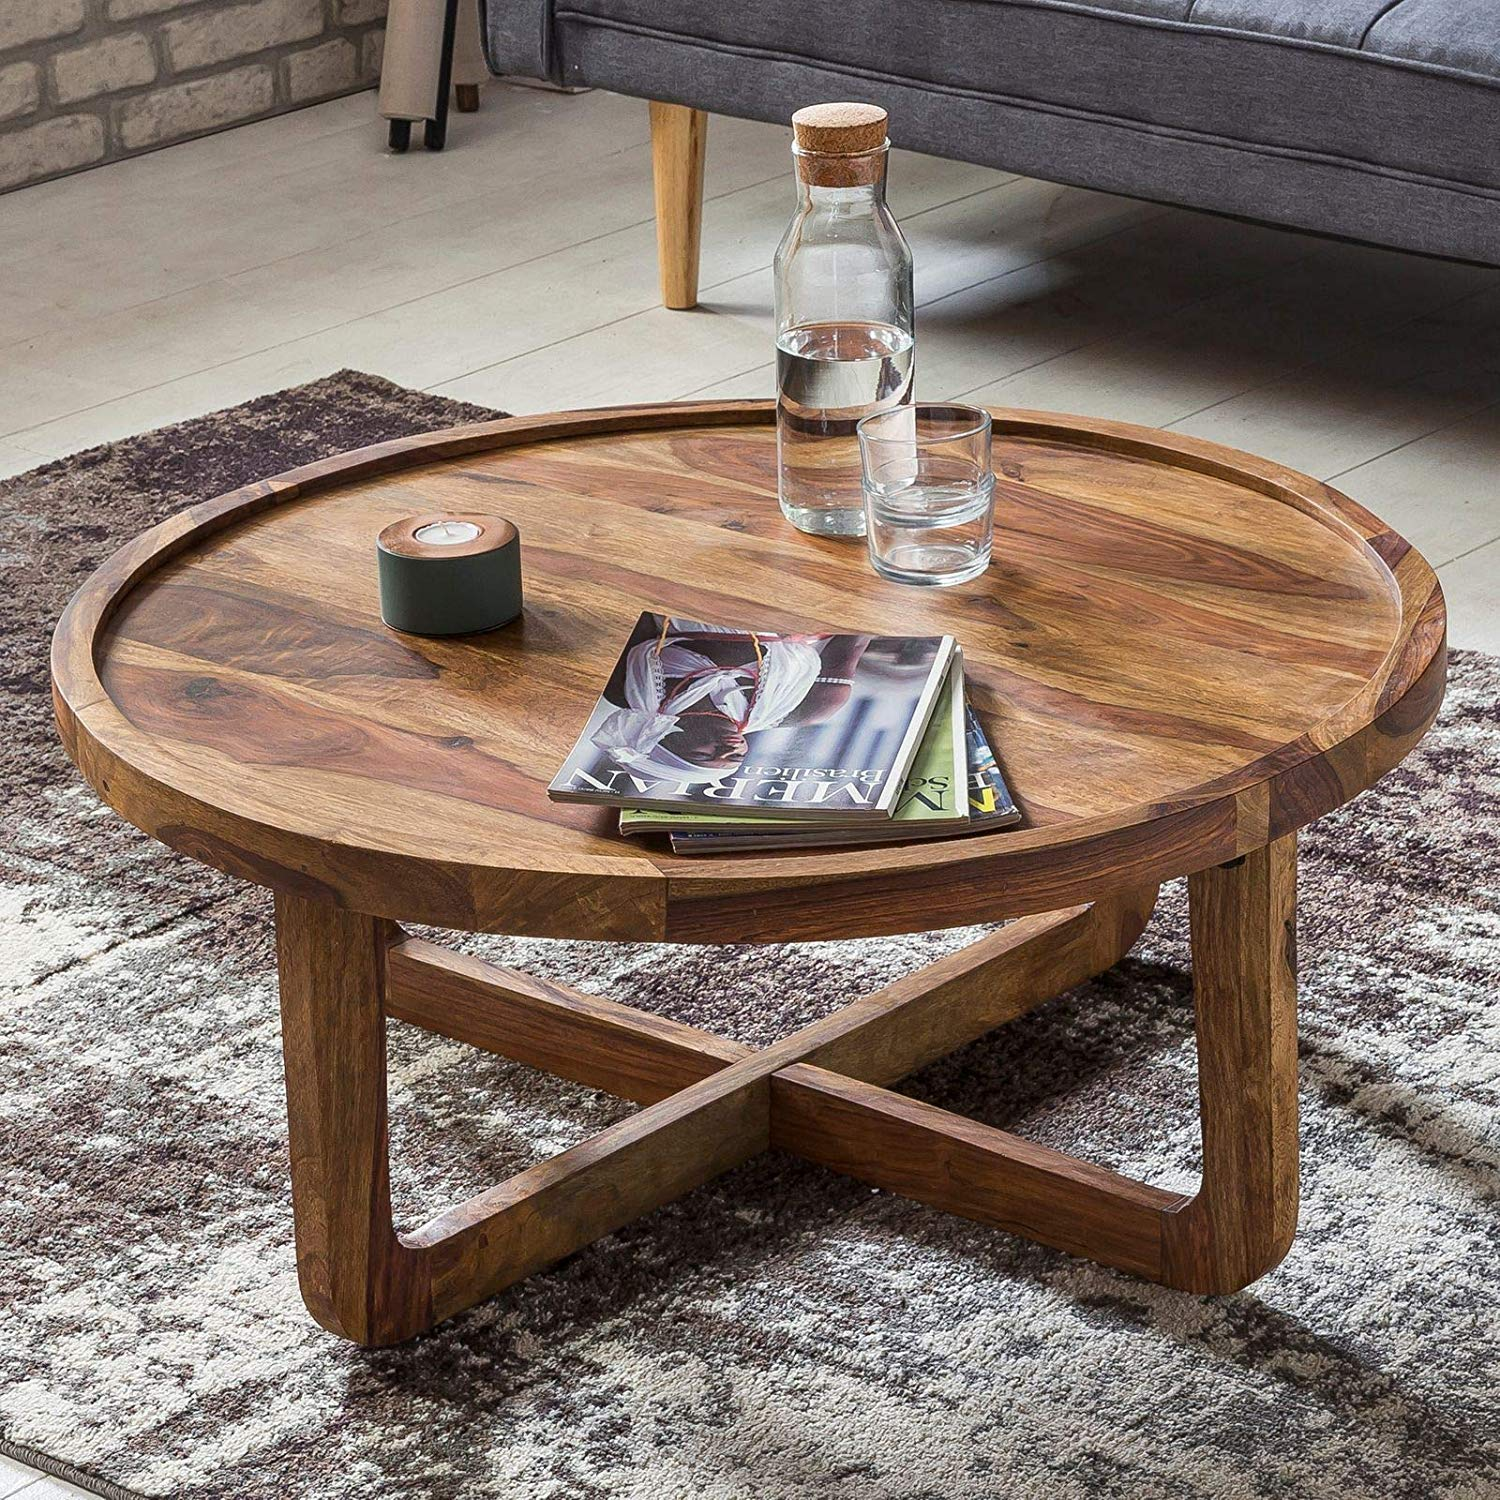 Samir/Indian Rosewood Round Center Coffee Table for Living Room Tea Table Furniture for Home